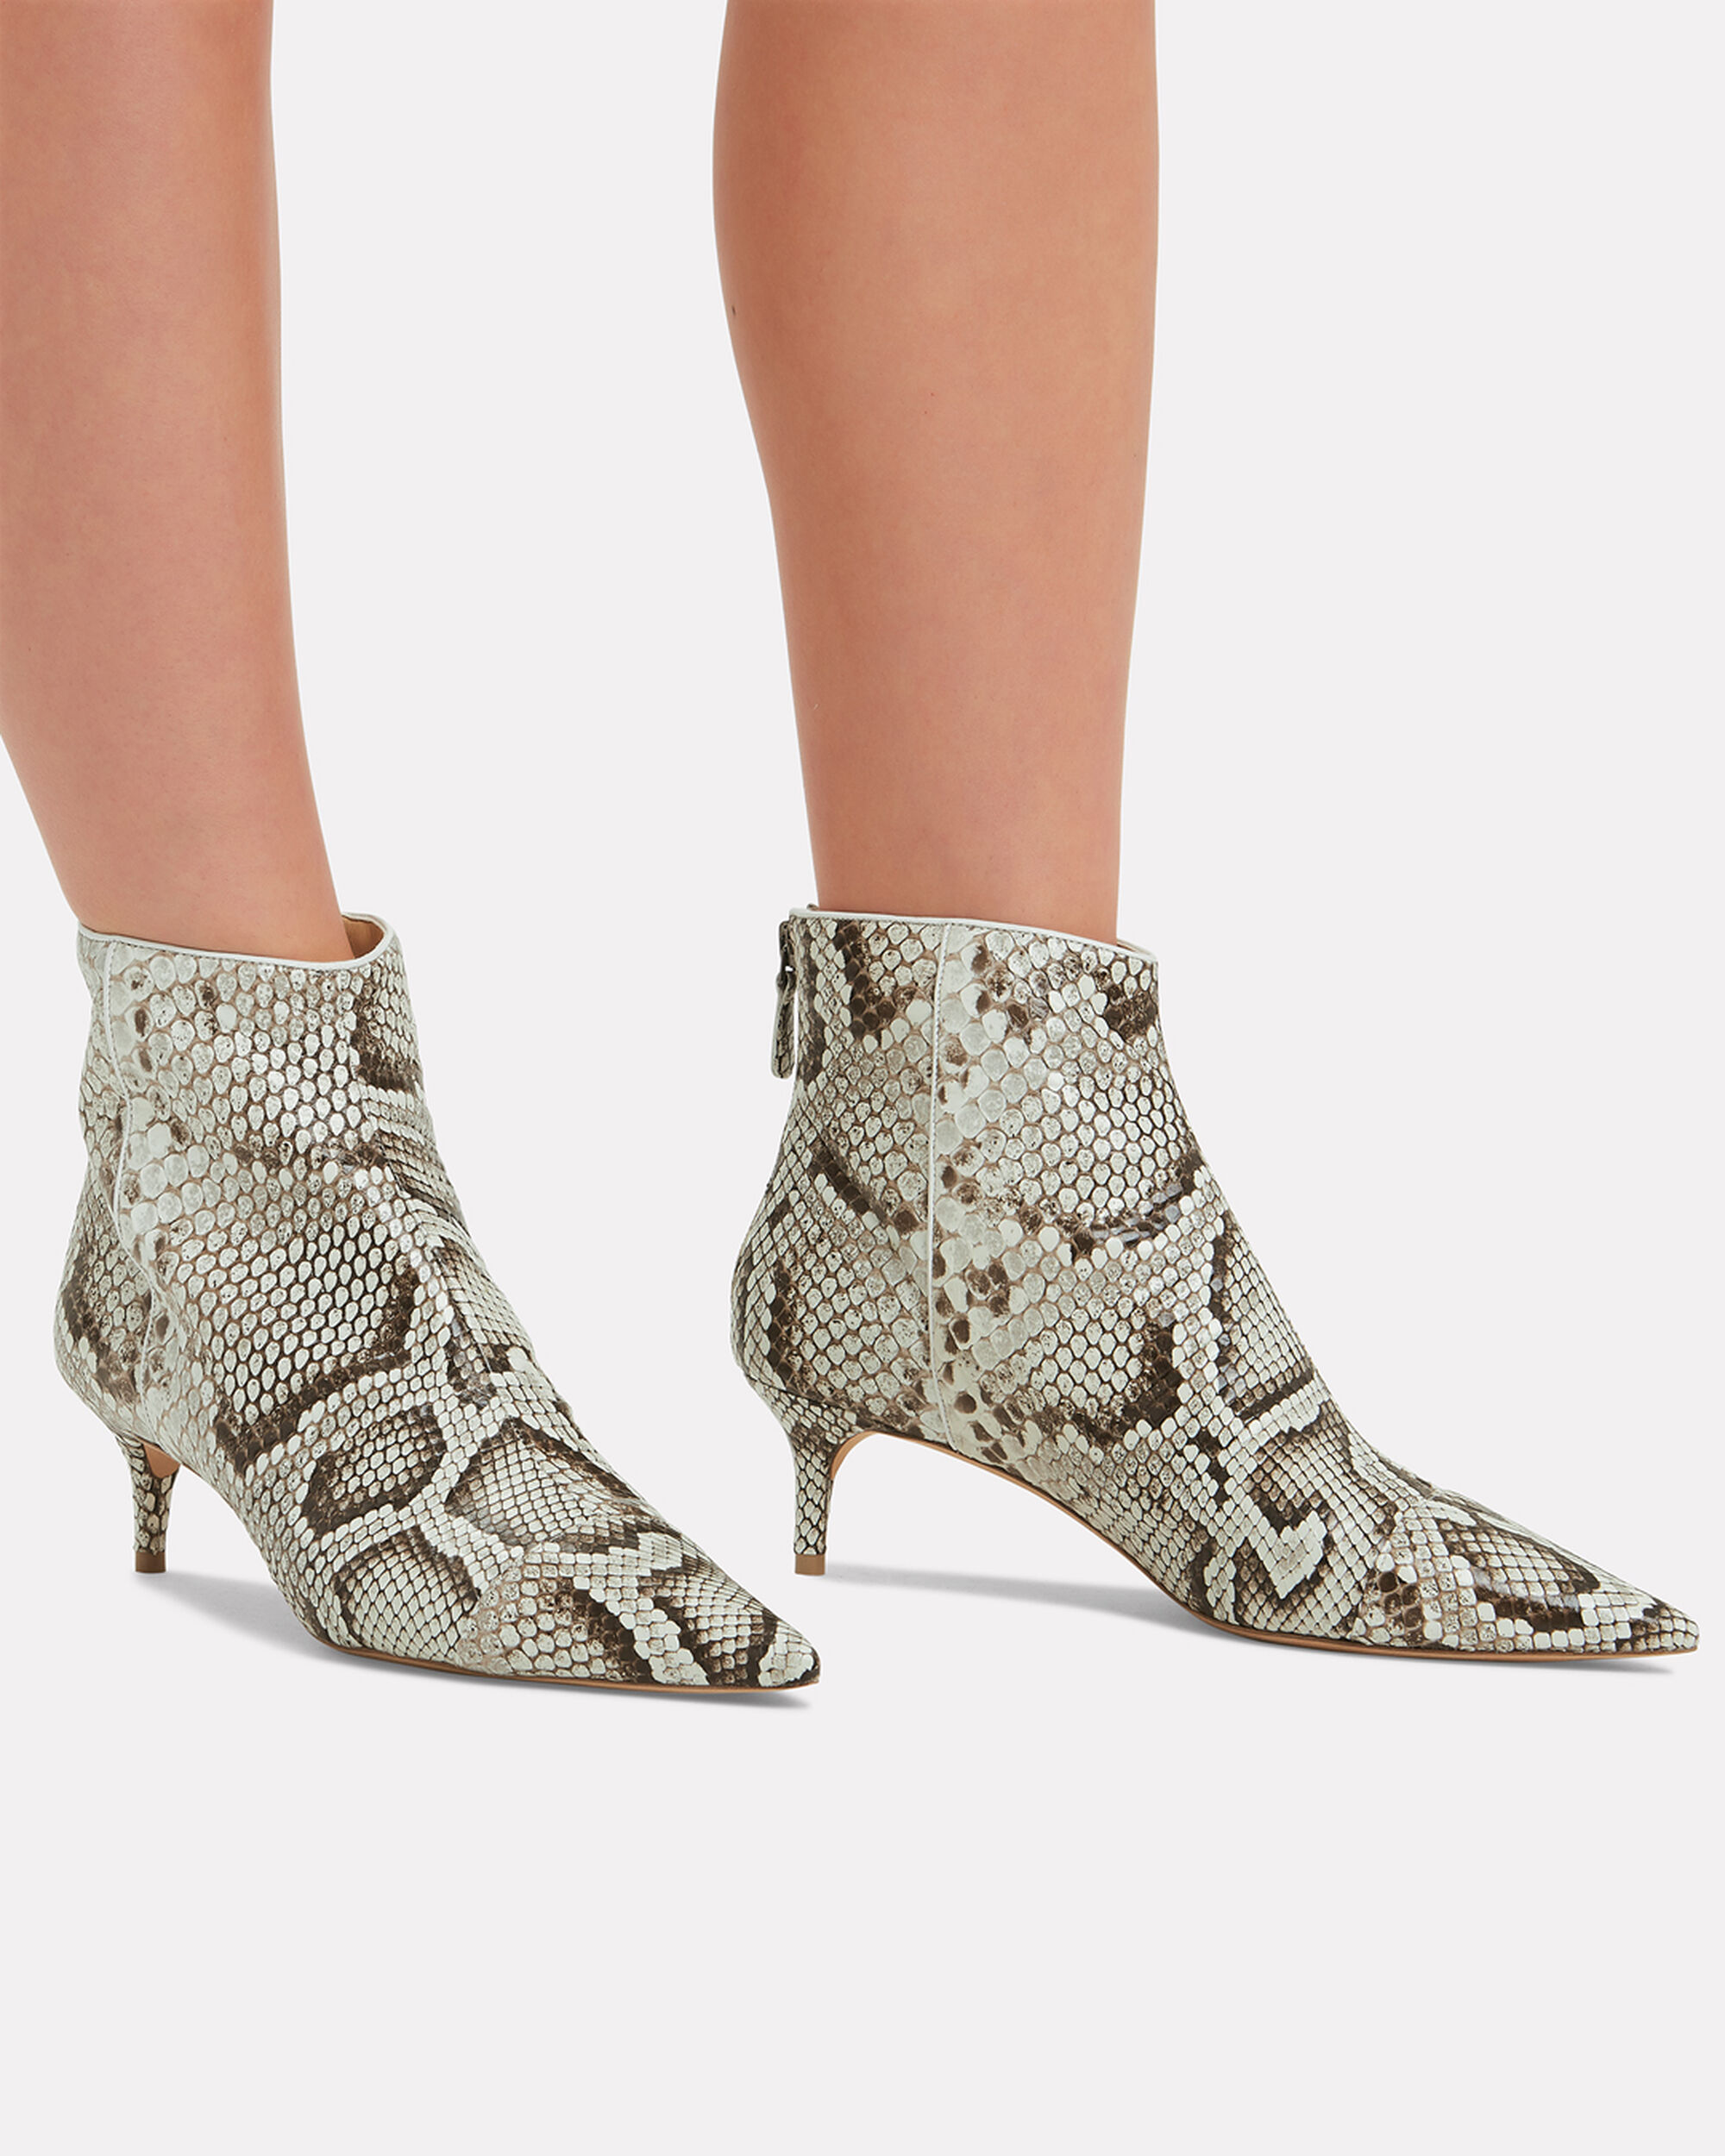 Kittie Booties, BEIGE, hi-res